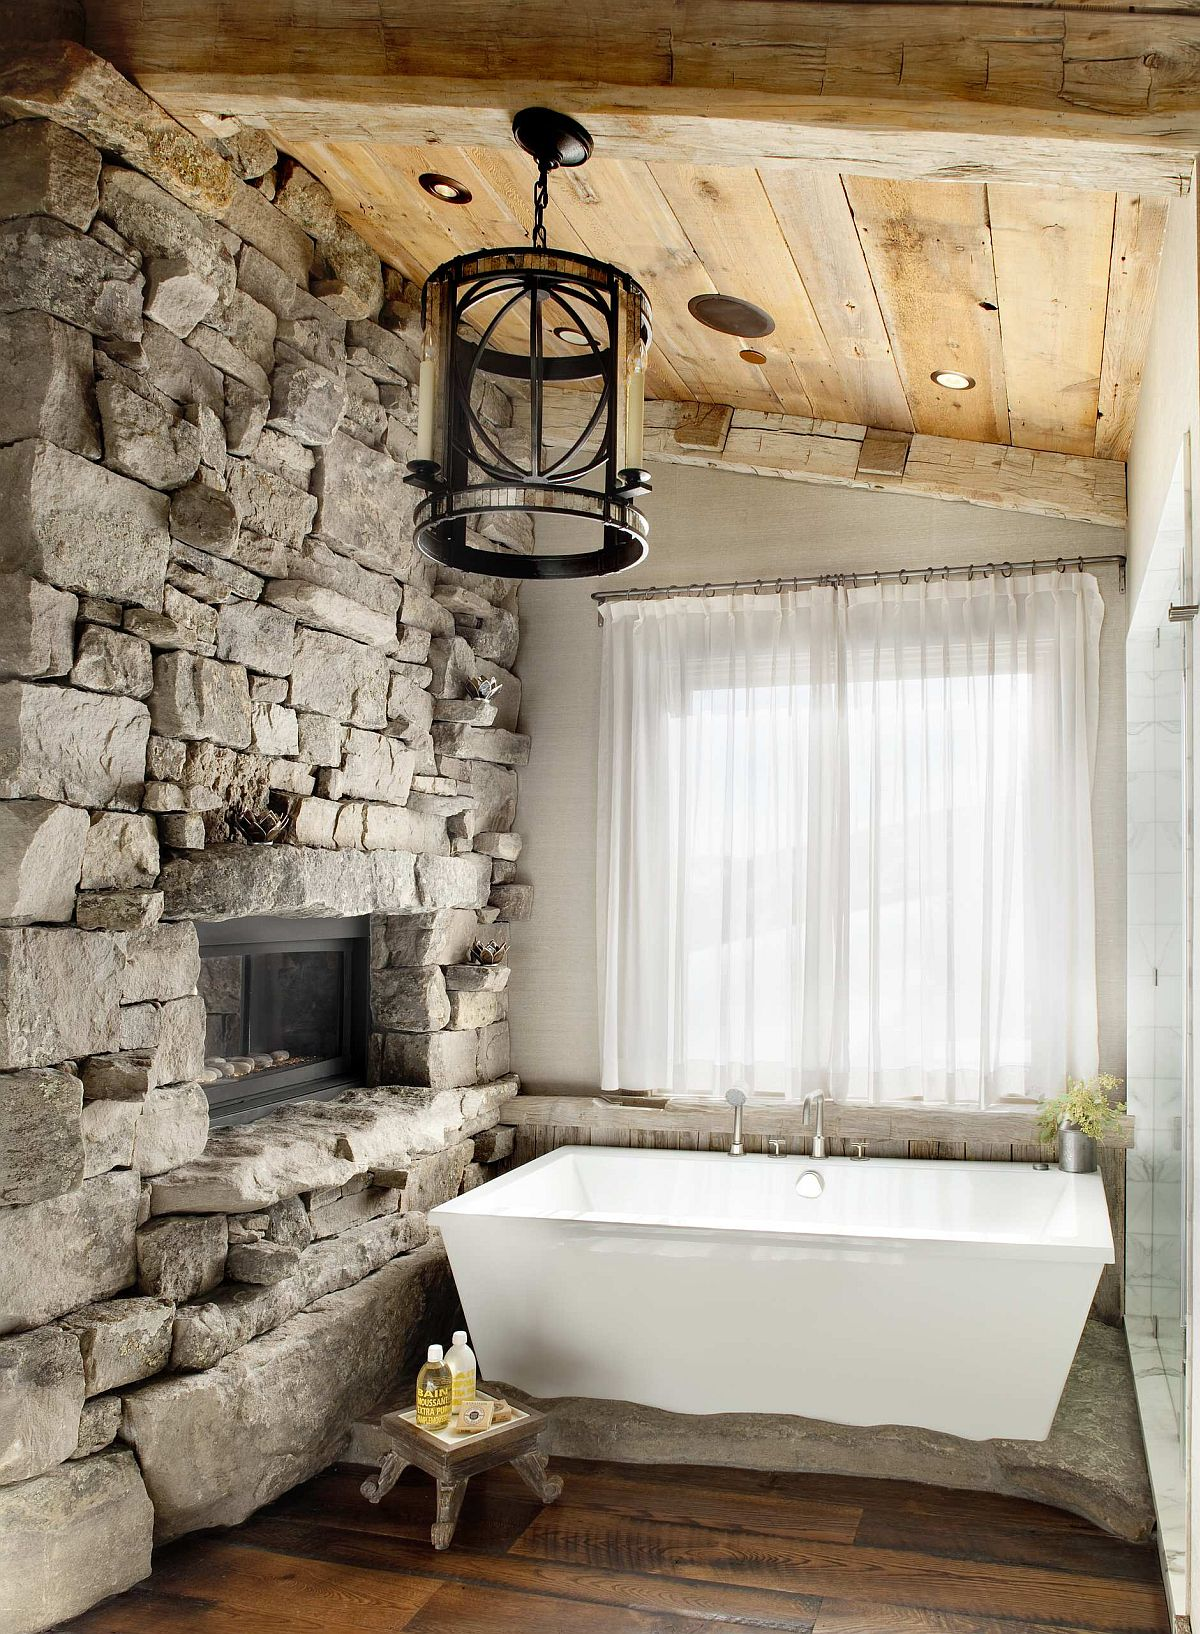 Gorgeous rustic bathroom with a stone wall, fireplace and a lovely tub in white